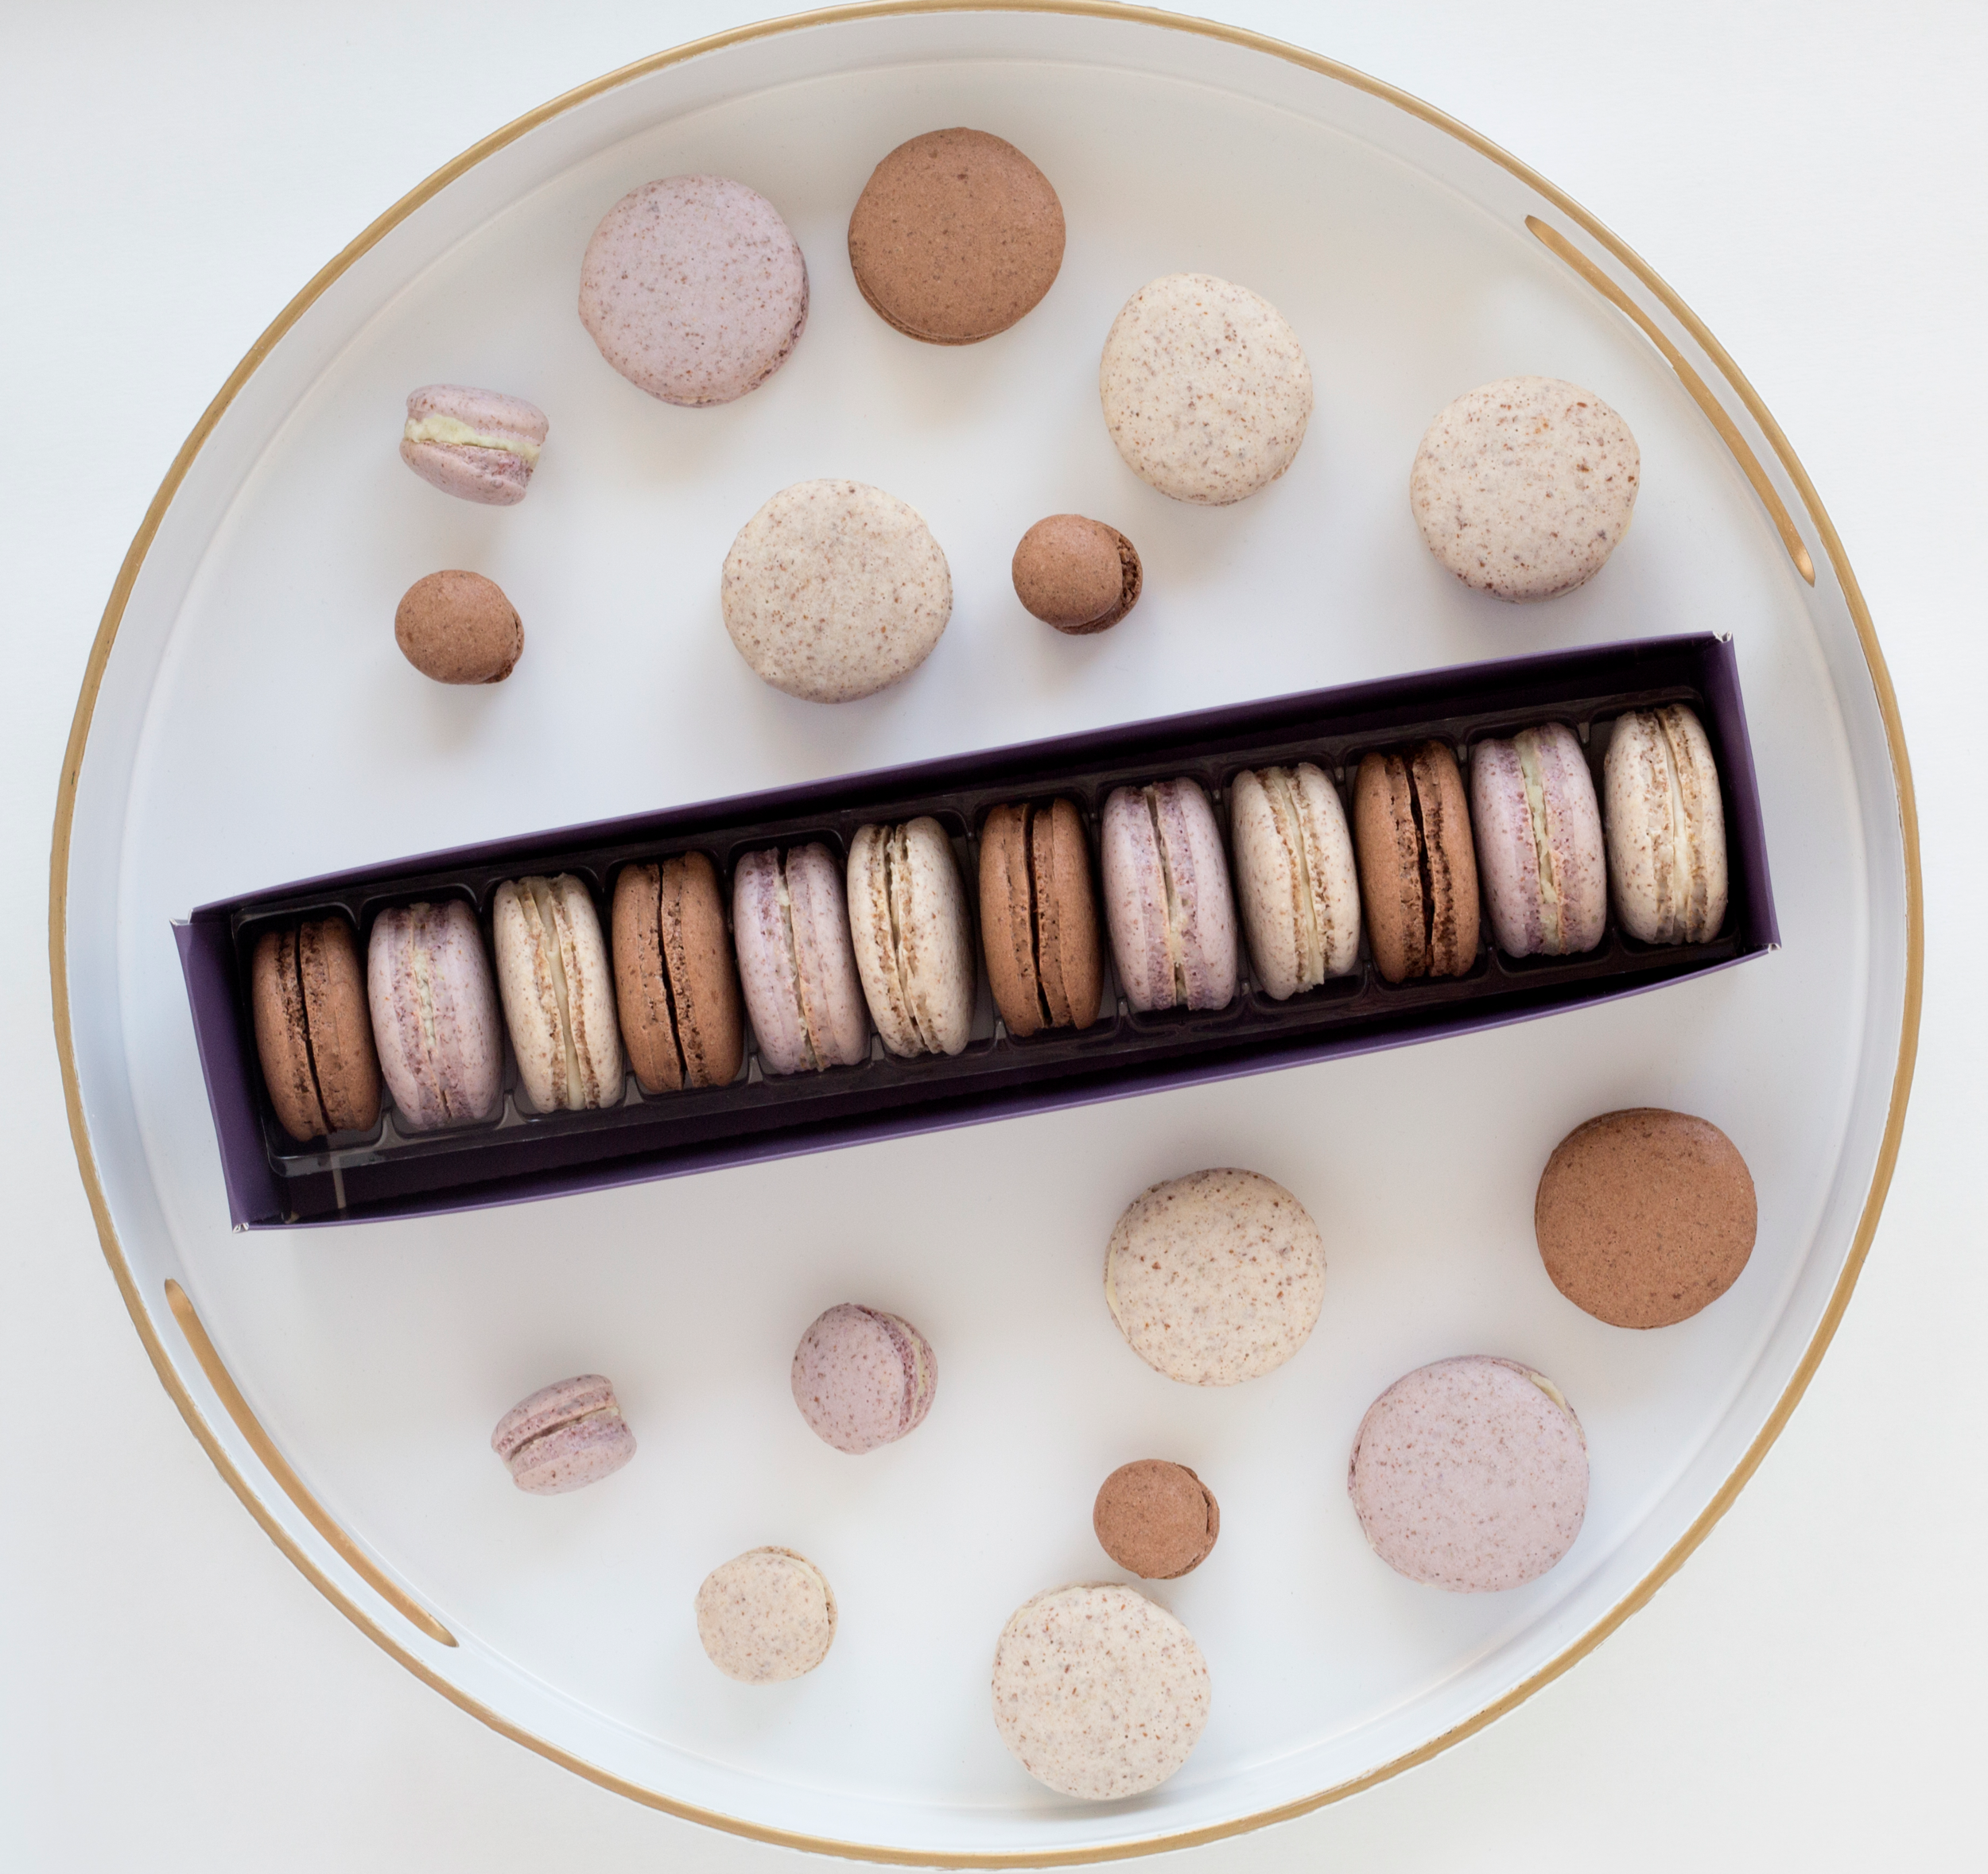 OUR MACARONS - GLUTEN FREE. VEGAN. WE PROMISE.